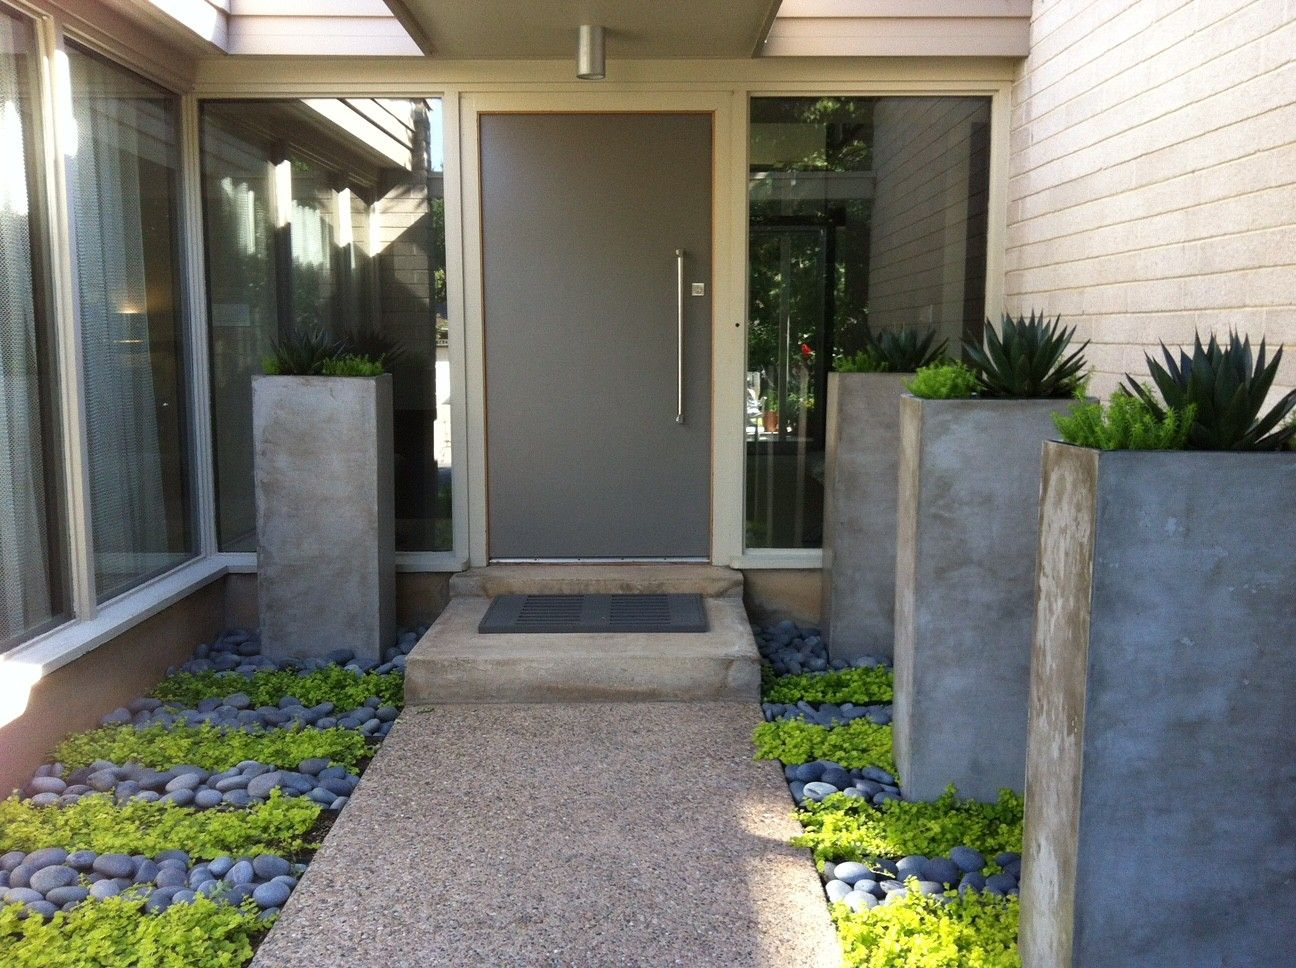 35 amazing ideas adding river rocks to your home design on modern front yard landscaping ideas id=40598